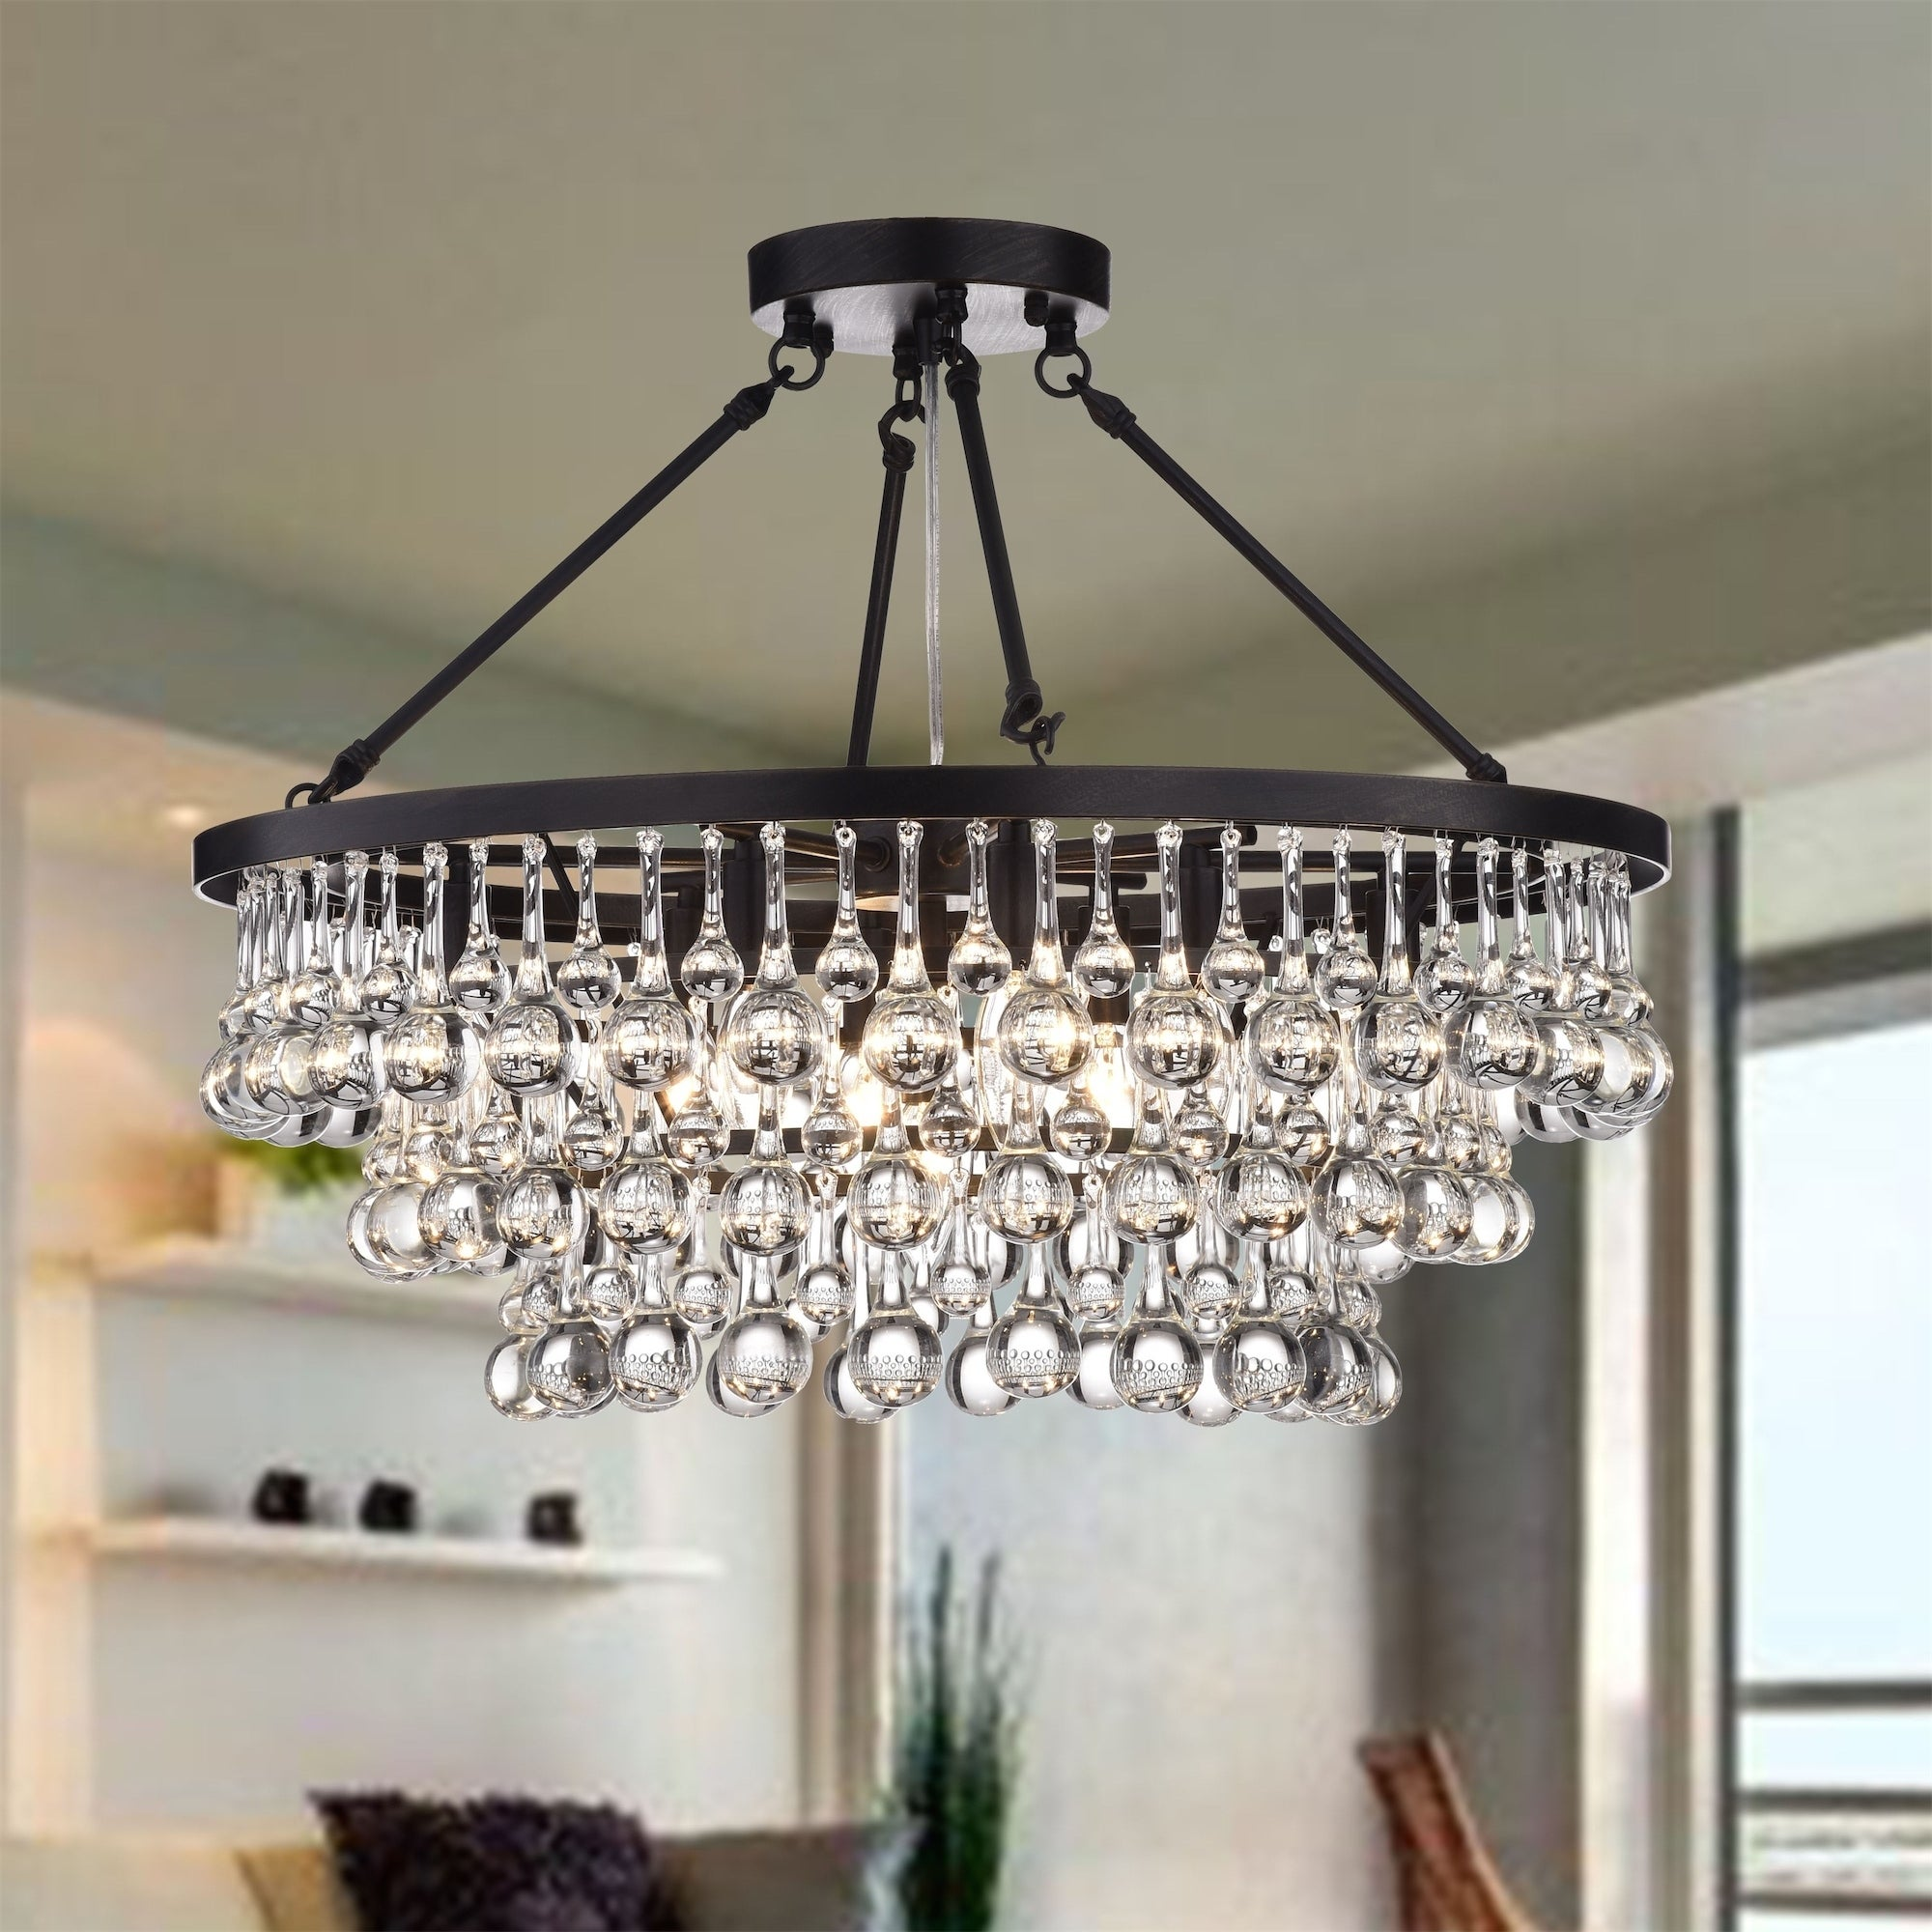 Details About Arosa 9 Light Black Semi Flush Mount Modern Crystal Chandelier